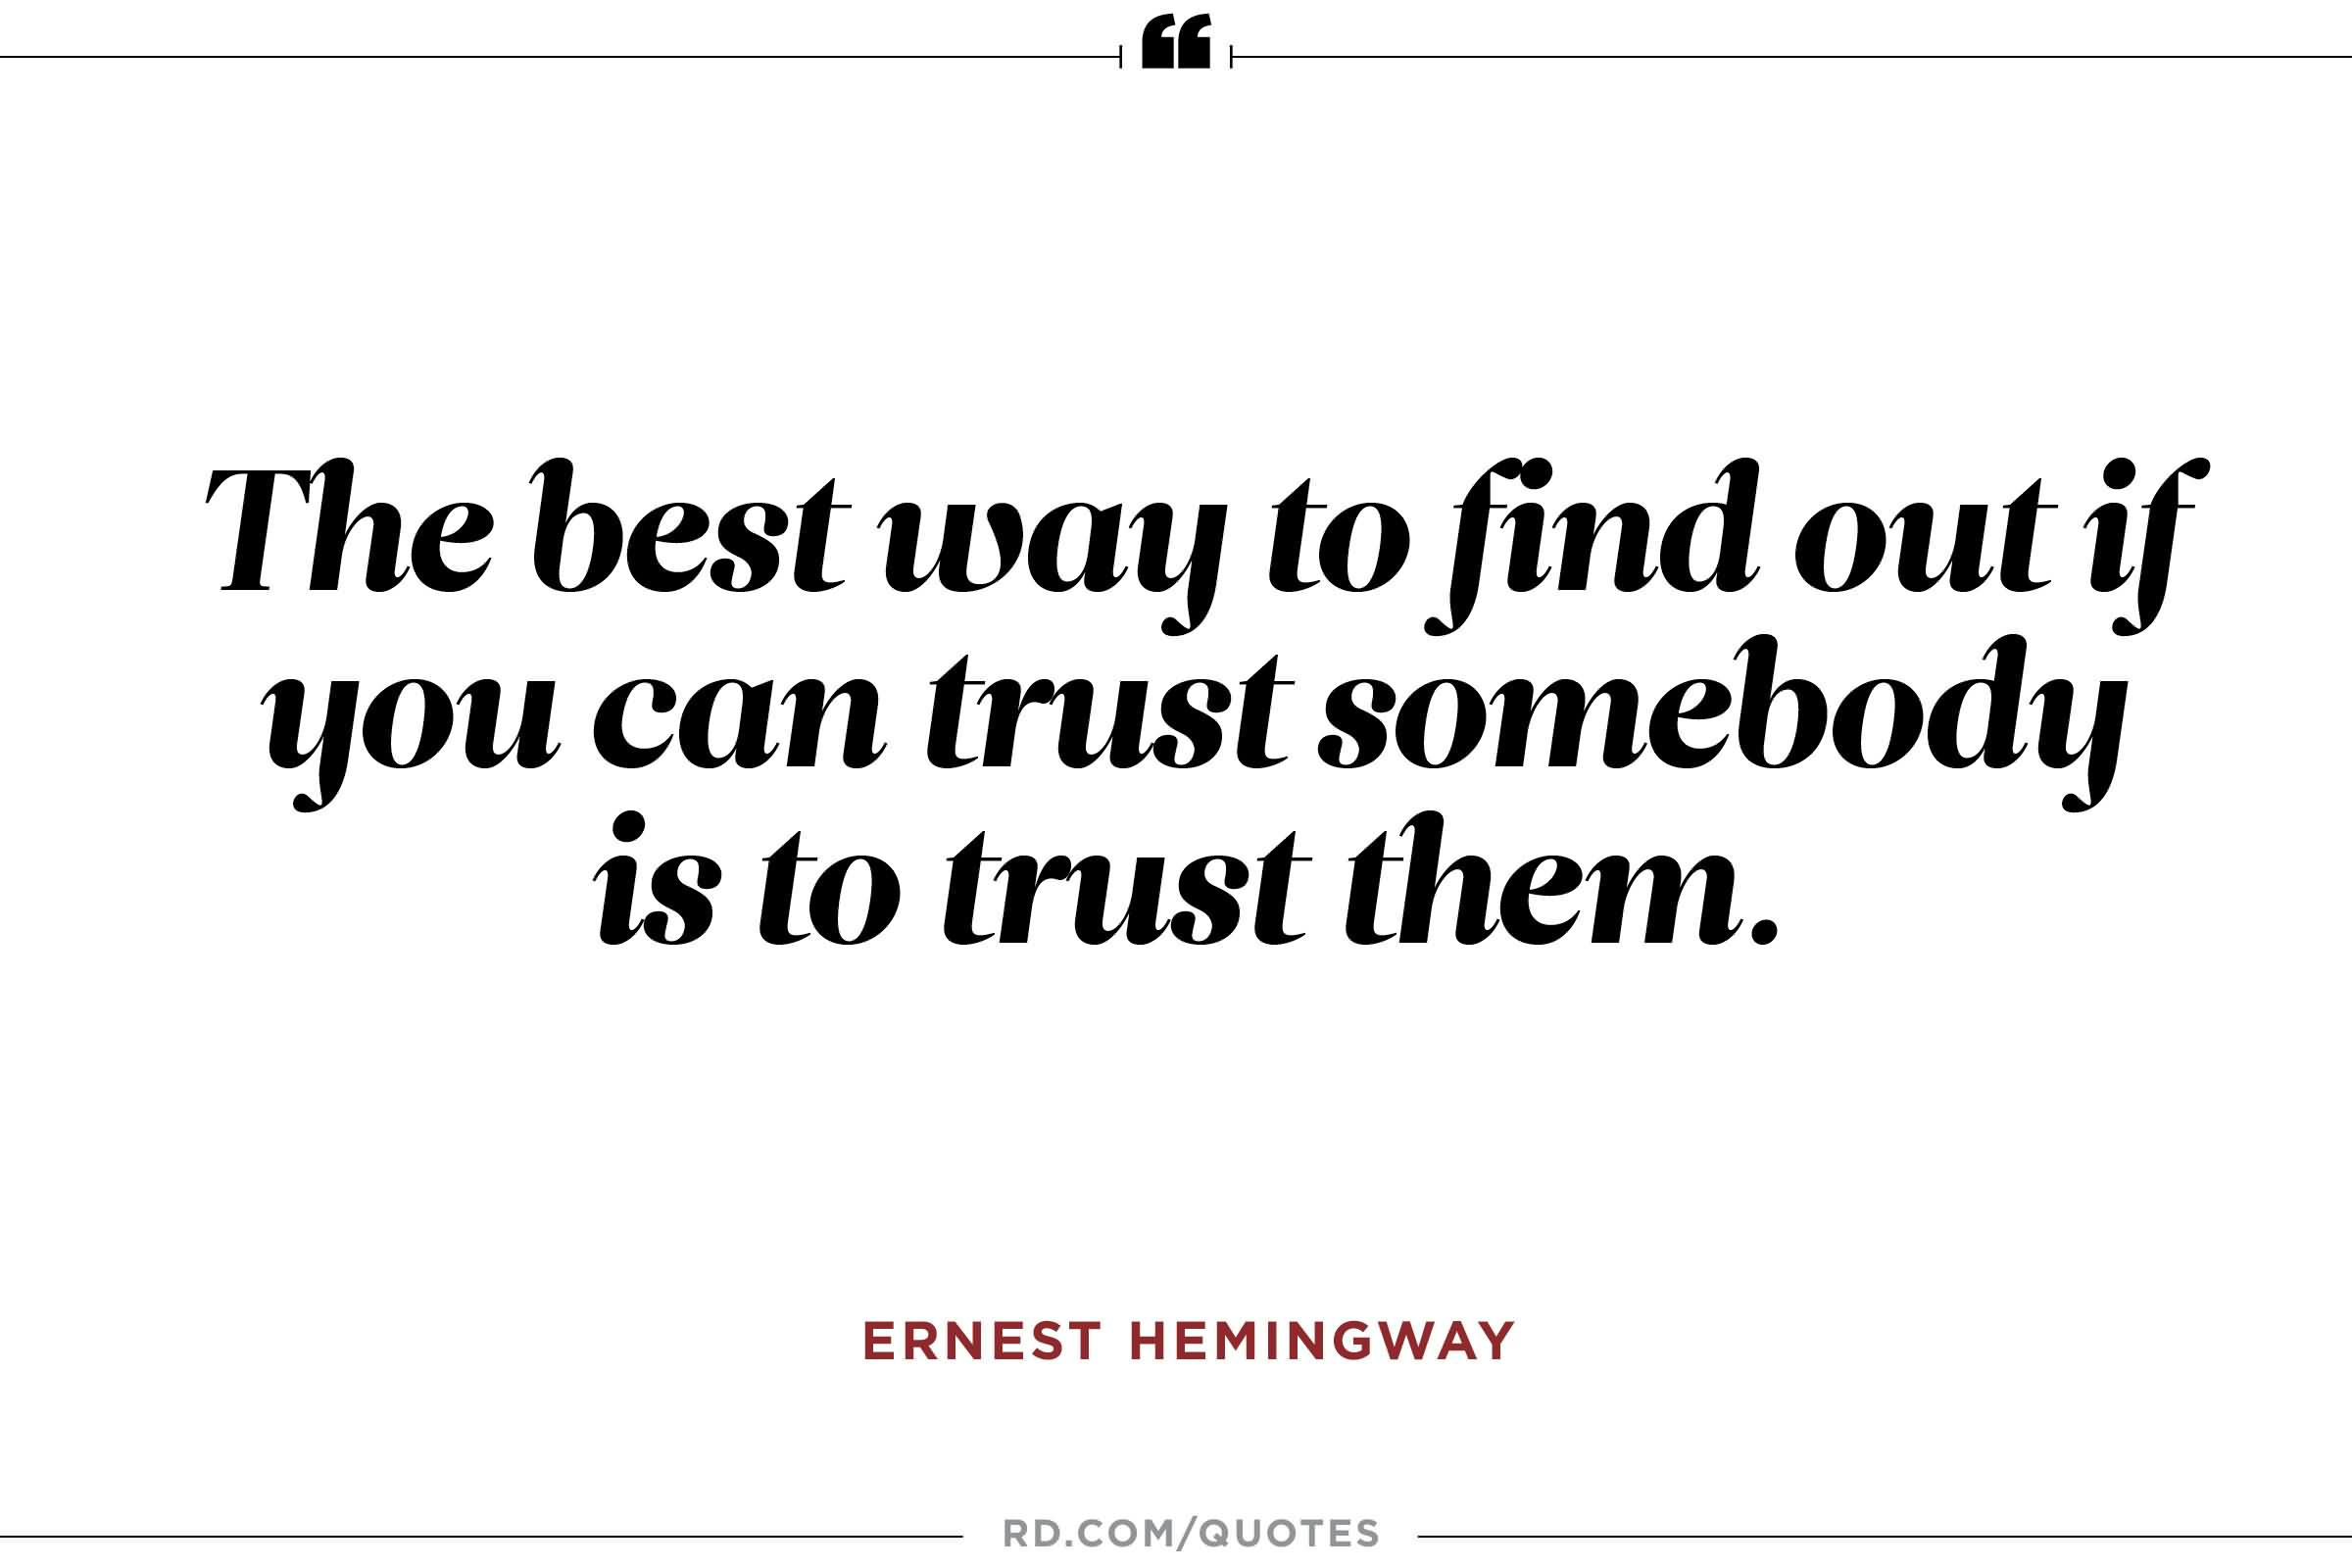 Awesome Ernest Hemingway Quotes